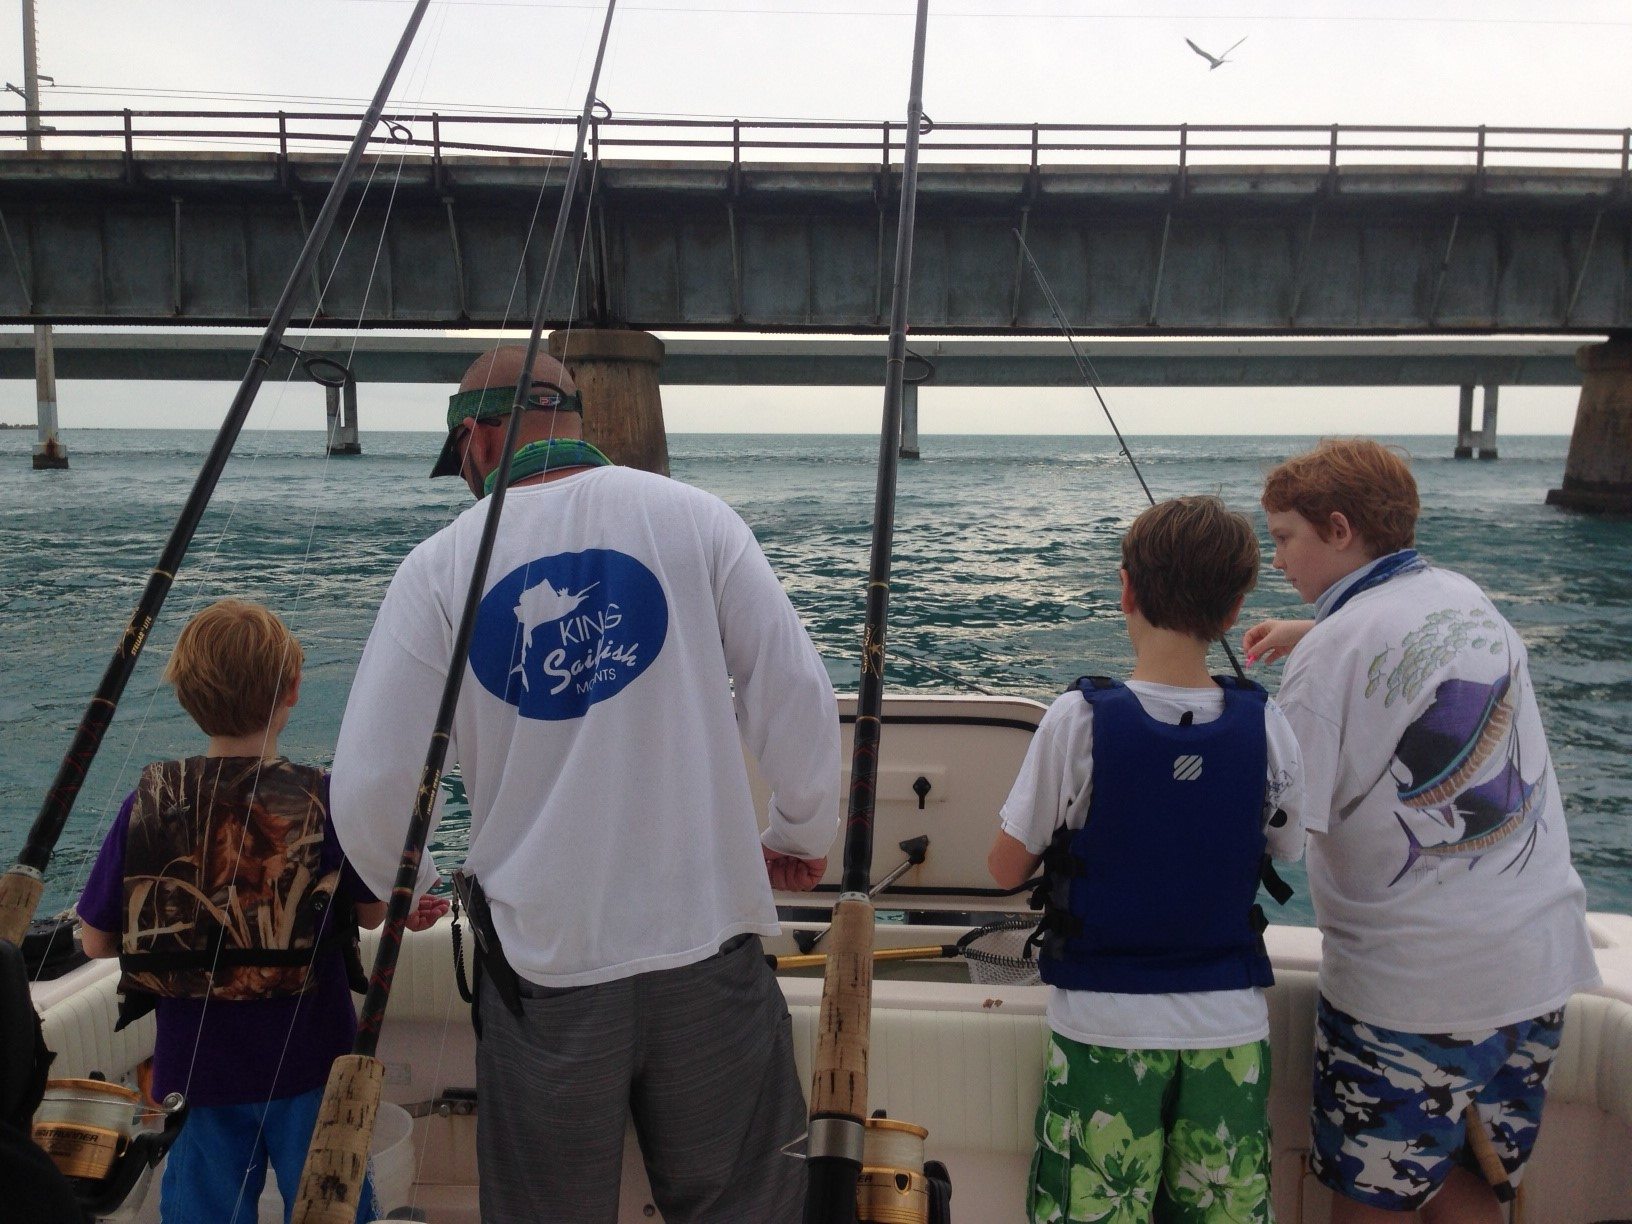 Family charter fishing at its best off Marathon in the Florida Keys with Capt. Doug.